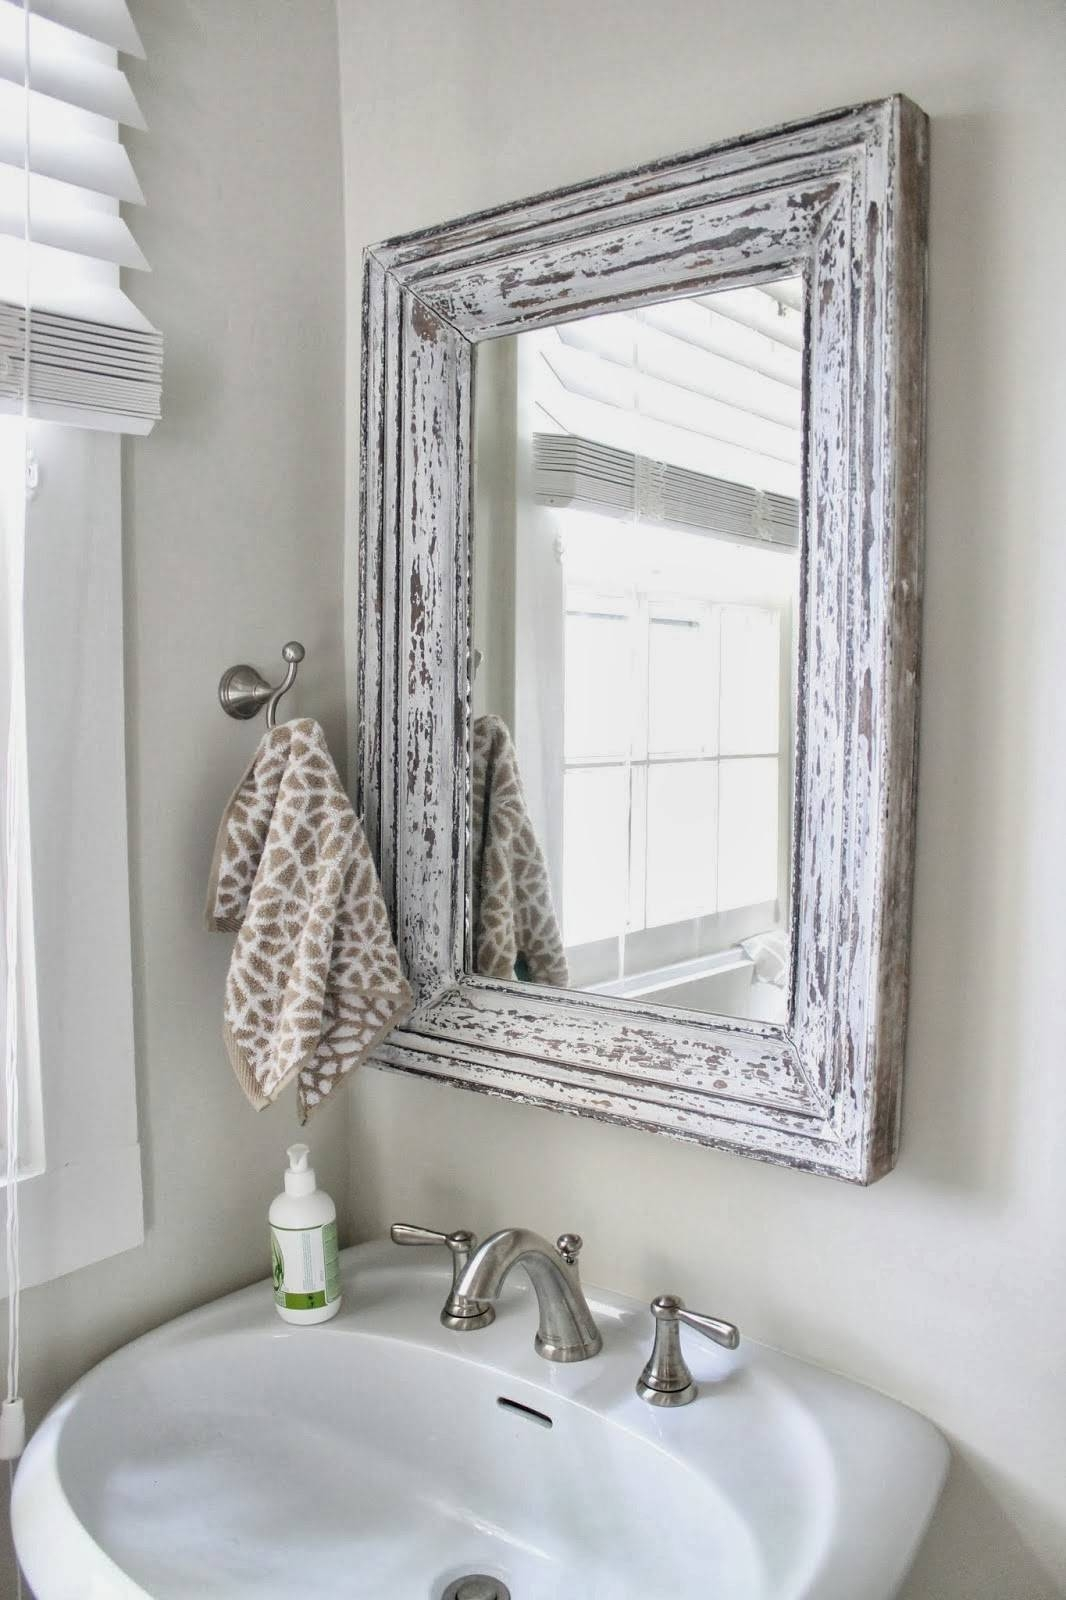 Small Bathroom Chic: Elegant Mirrors Make Bathrooms Look Bigger Intended For Chic Mirrors (View 13 of 15)